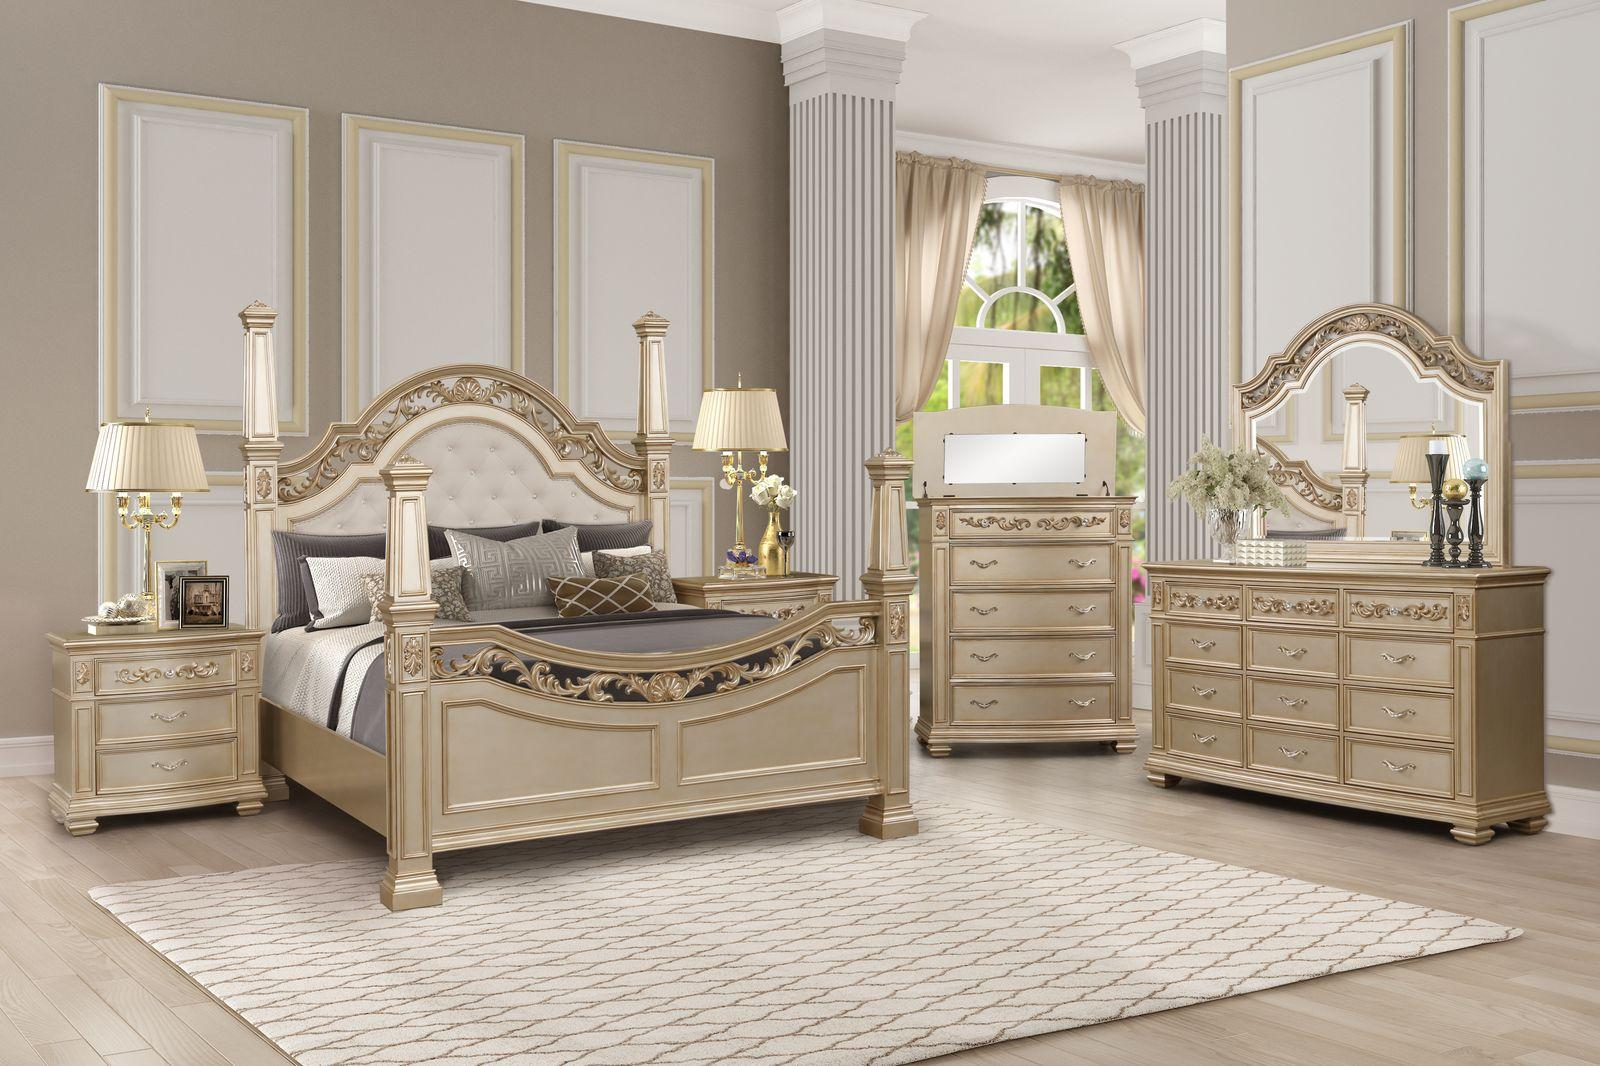 Traditional Gold  and Wood Queen Poster Bedroom Set 5 pcs Valentina by Cosmos Furniture